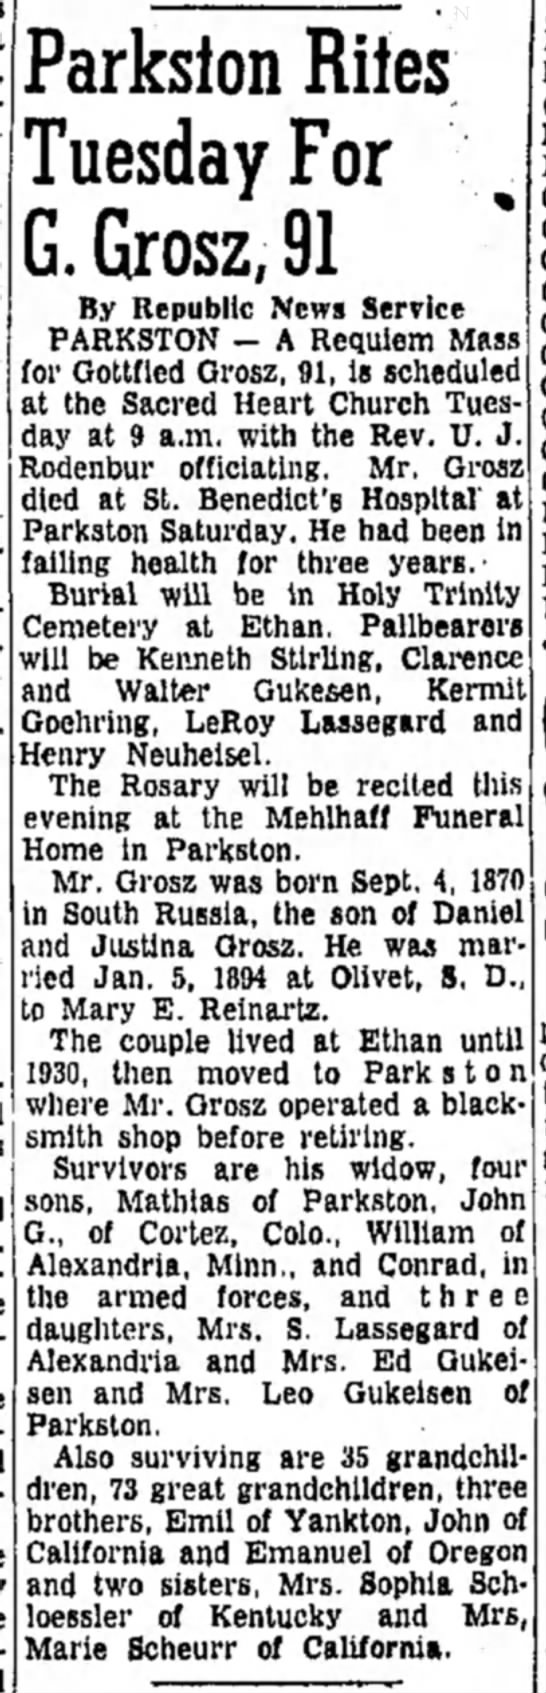 GOTTFRIED GROSZ - Parkston Rites Tuesday For G. Grosz, 91 By...